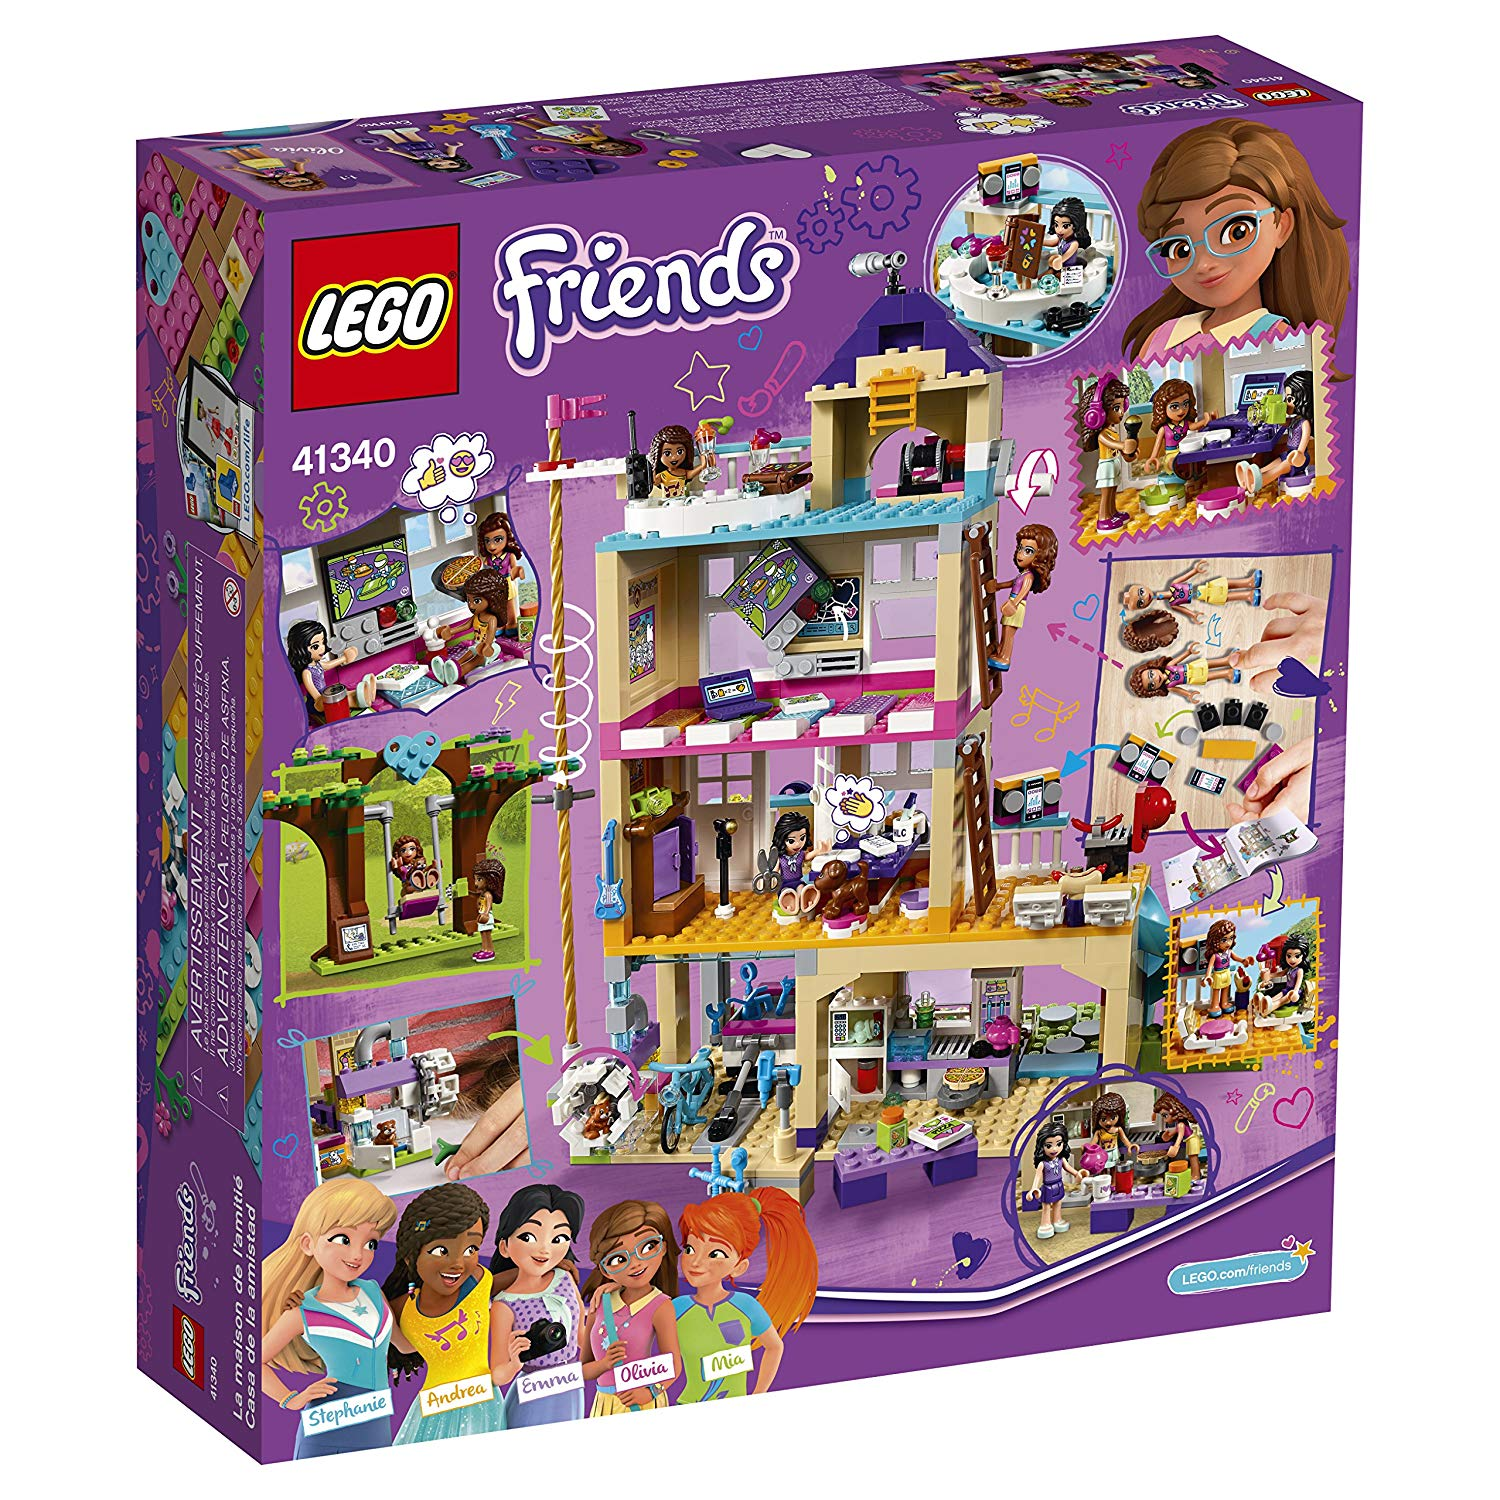 Lego Friends Christmas Sets.Lego Friends Friendship House 41340 Kids Building Set With Mini Dolls Popular Girl Toys For Christmas And Valentines Gifts 722 Piece